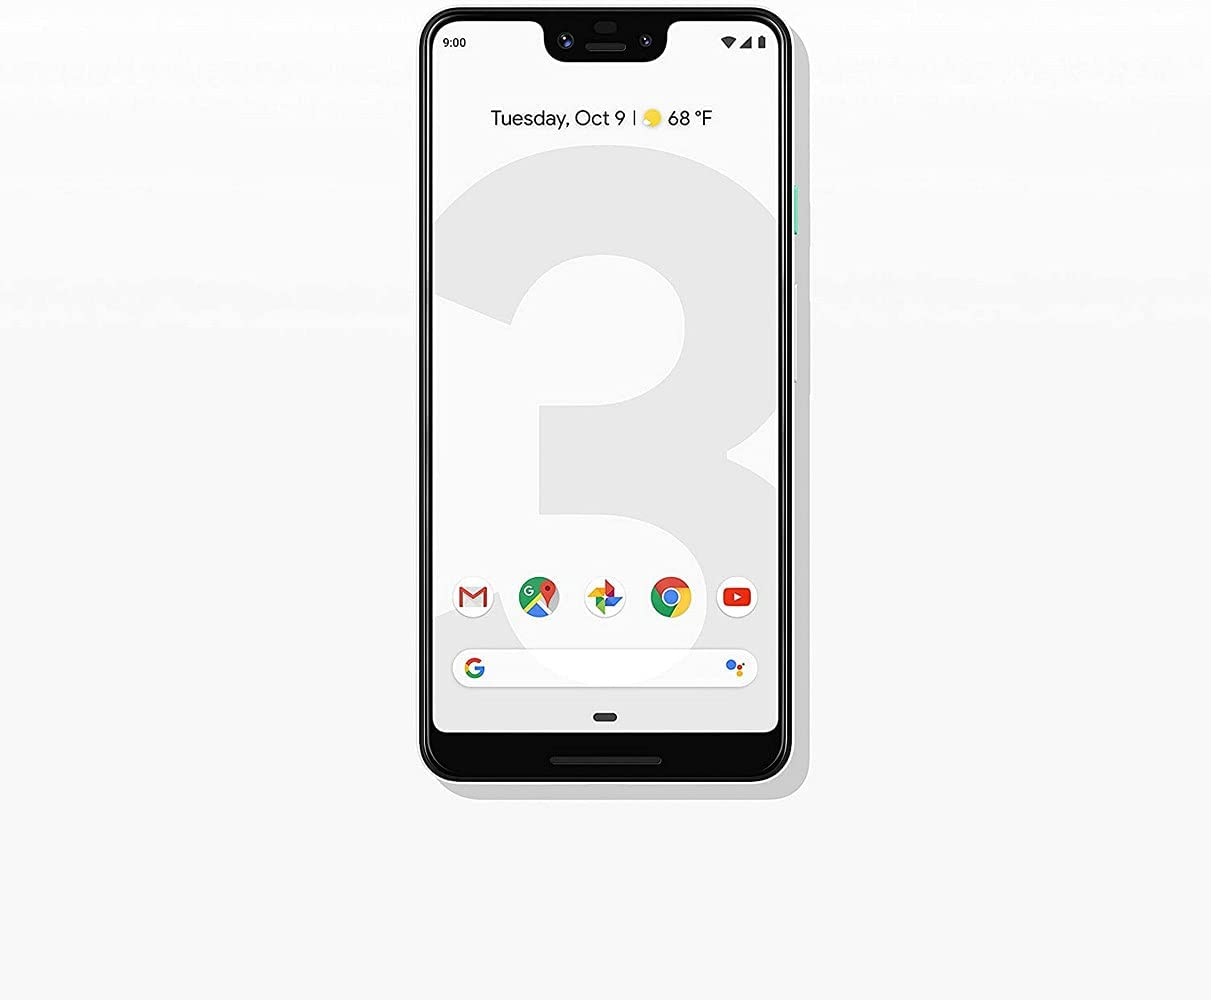 Google Pixel 3 XL 64GB Unlocked GSM & CDMA 4G LTE Android Phone w/ 12.2MP Rear & Dual 8MP Front Camera - Clearly White (Renewed)